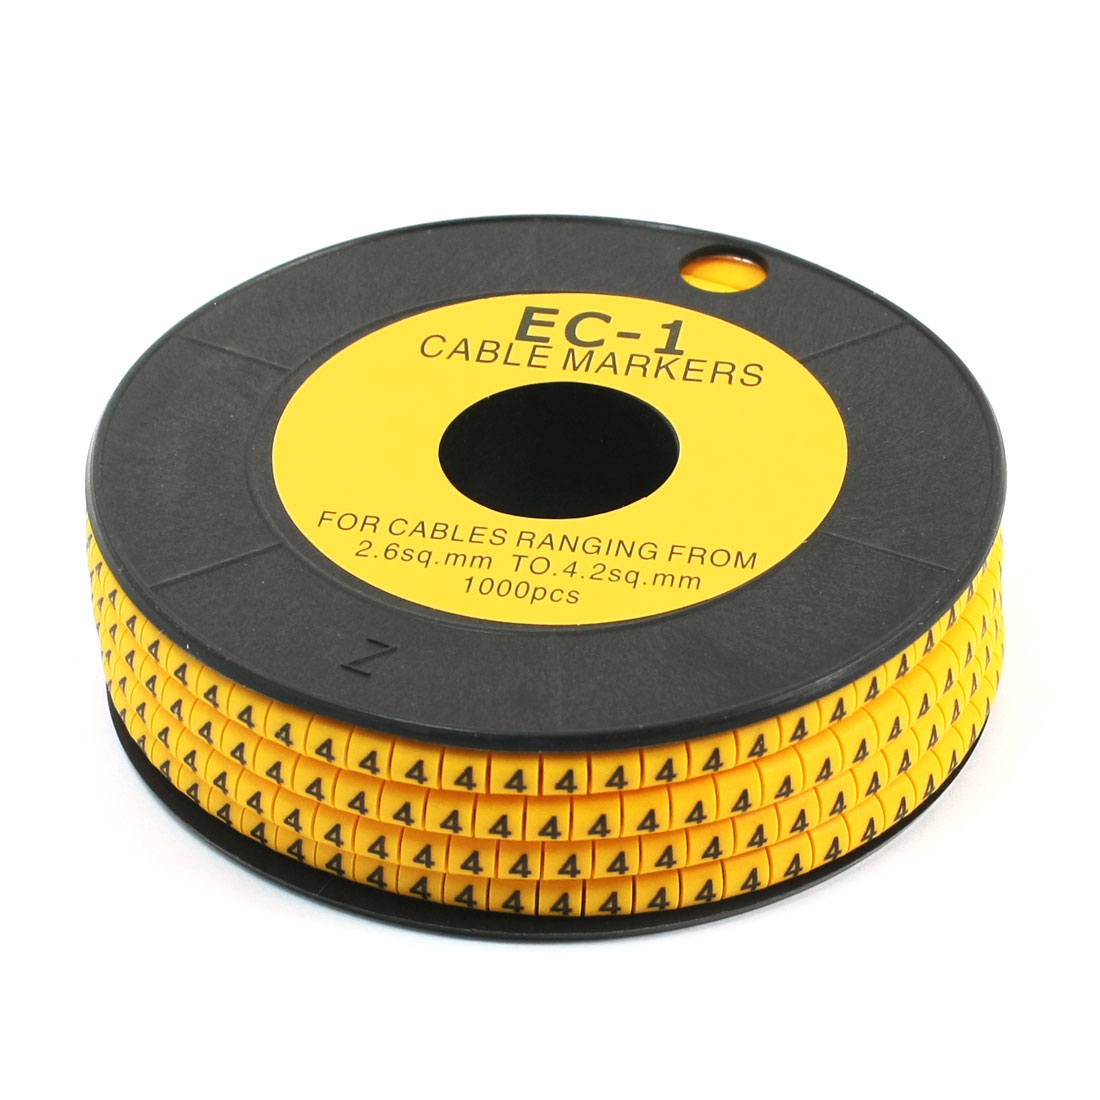 1000Pcs EC-1 Arabic Numeral 4 Print Yellow Flexible PVC Concave Shaped Wire Cable Markers Roll for 2.6-4.2mm2 Tube Label